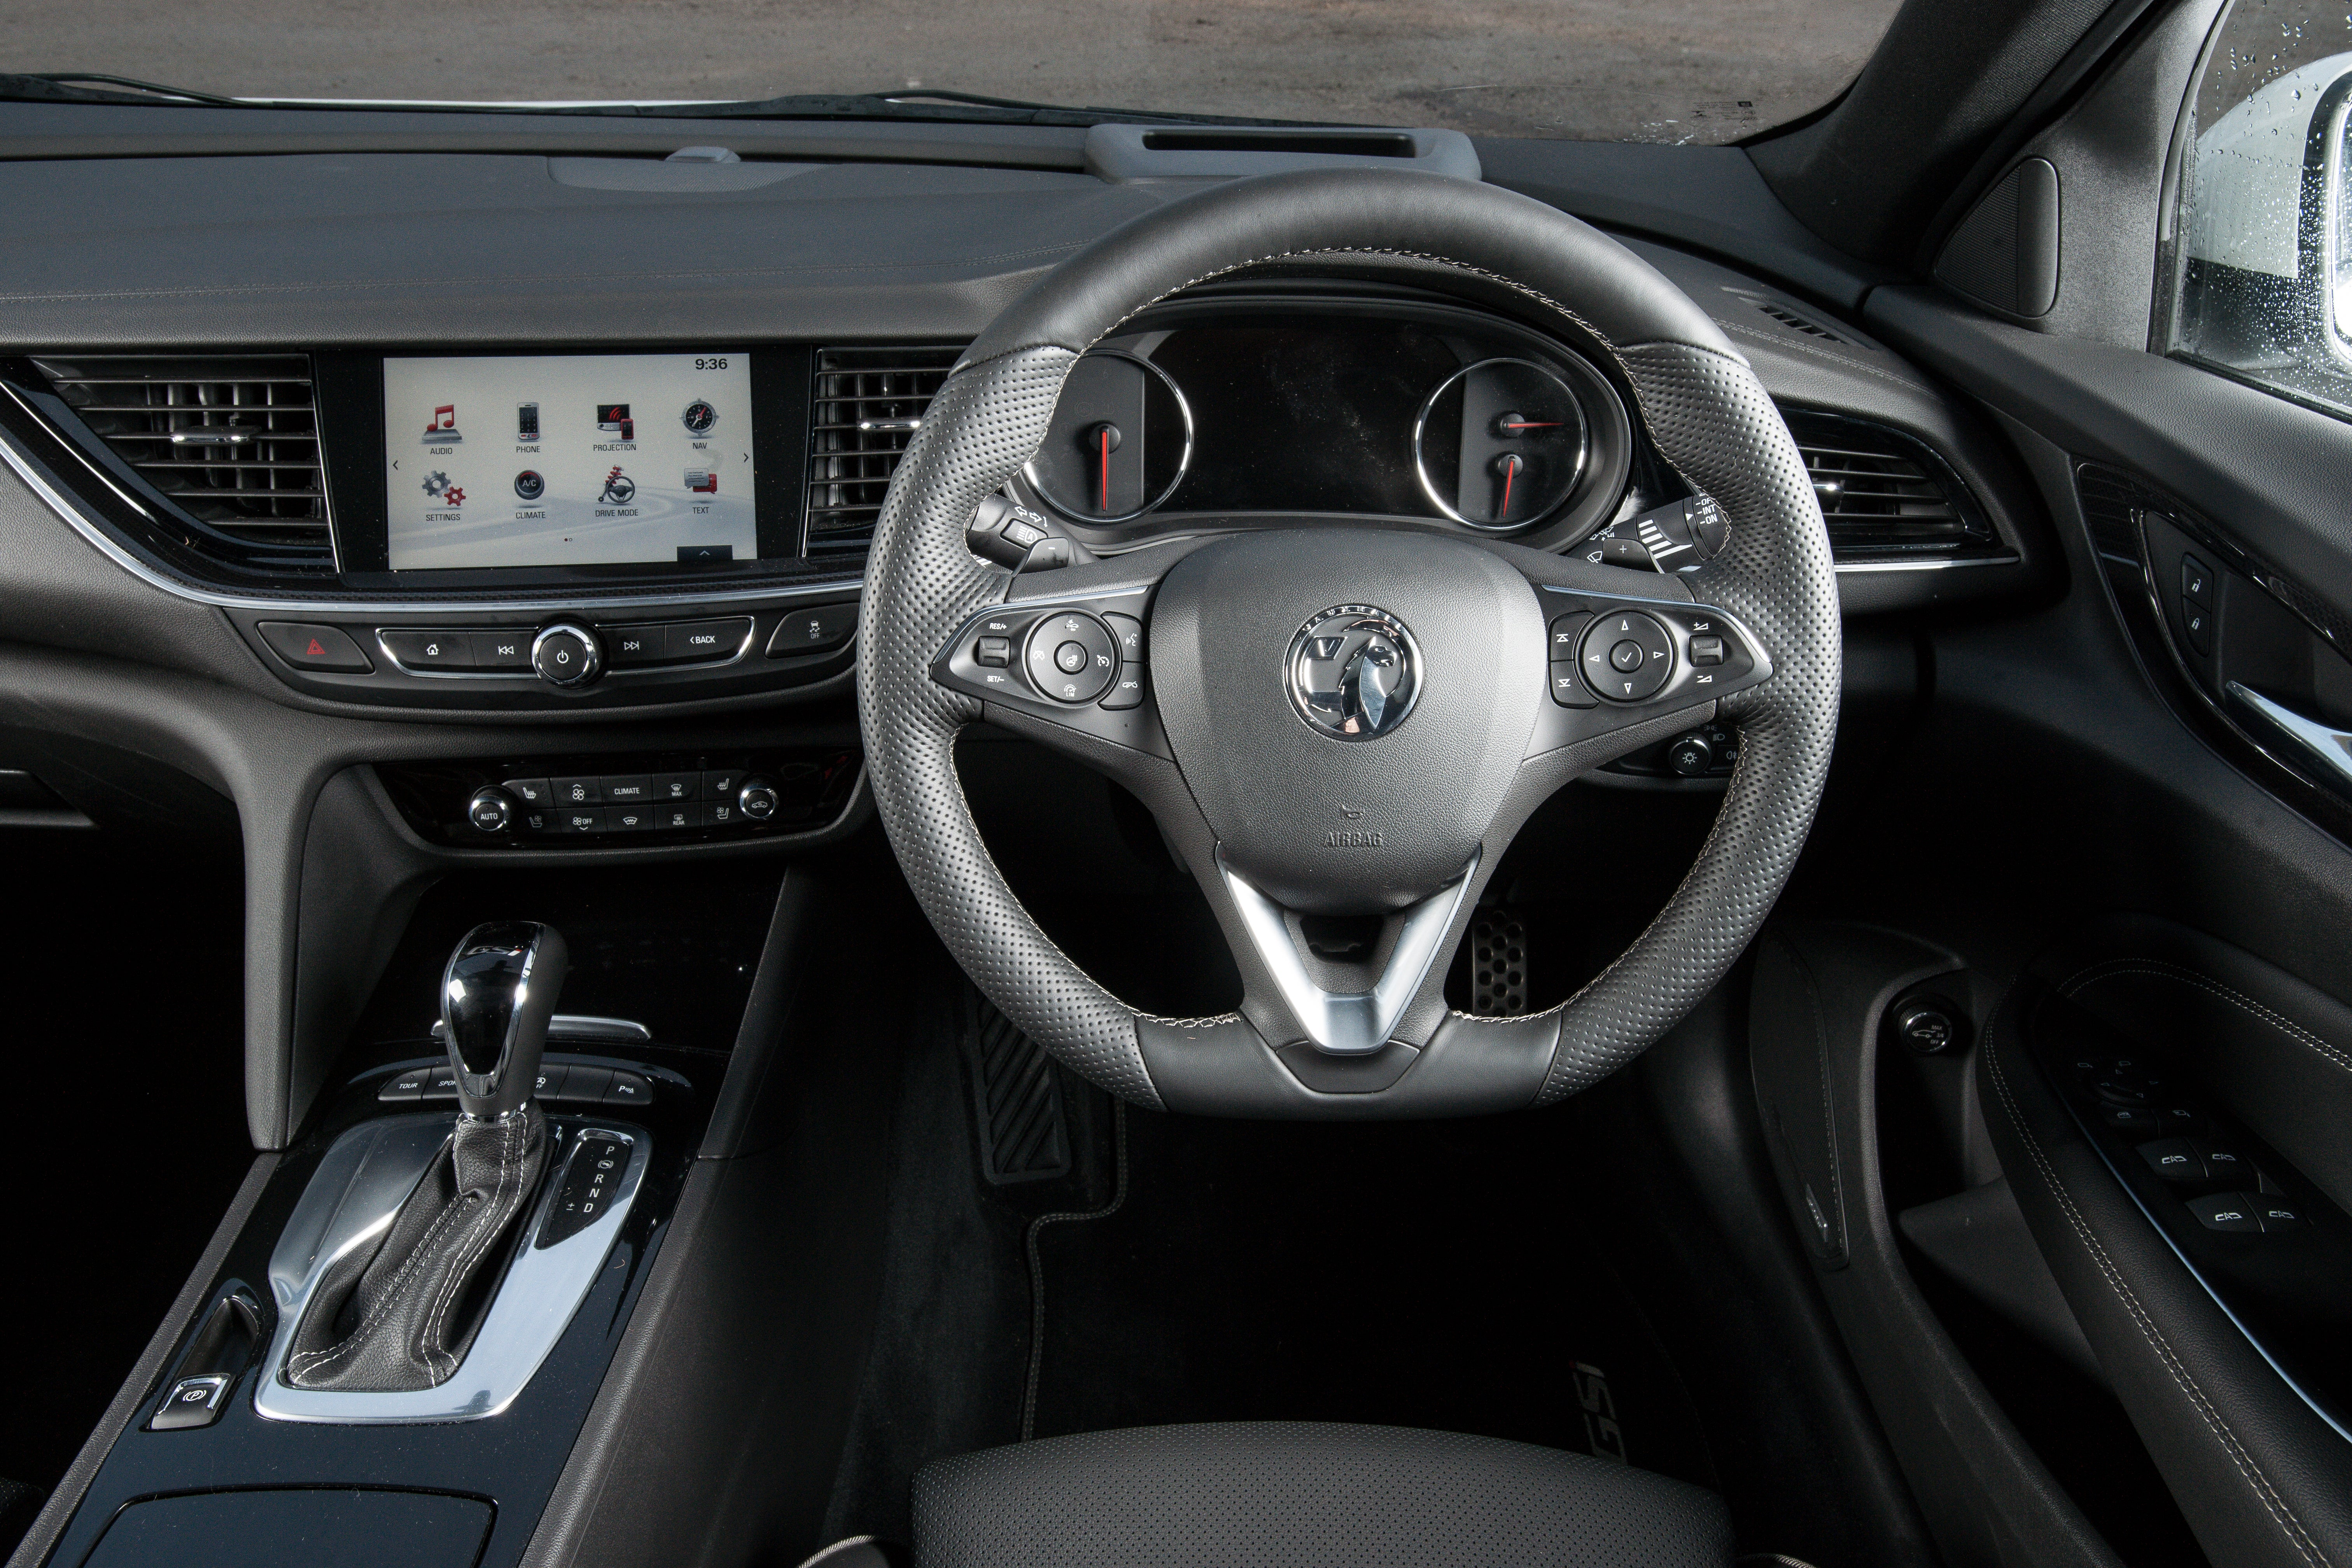 Vauxhall Insignia Grand Sport Driver's Seat